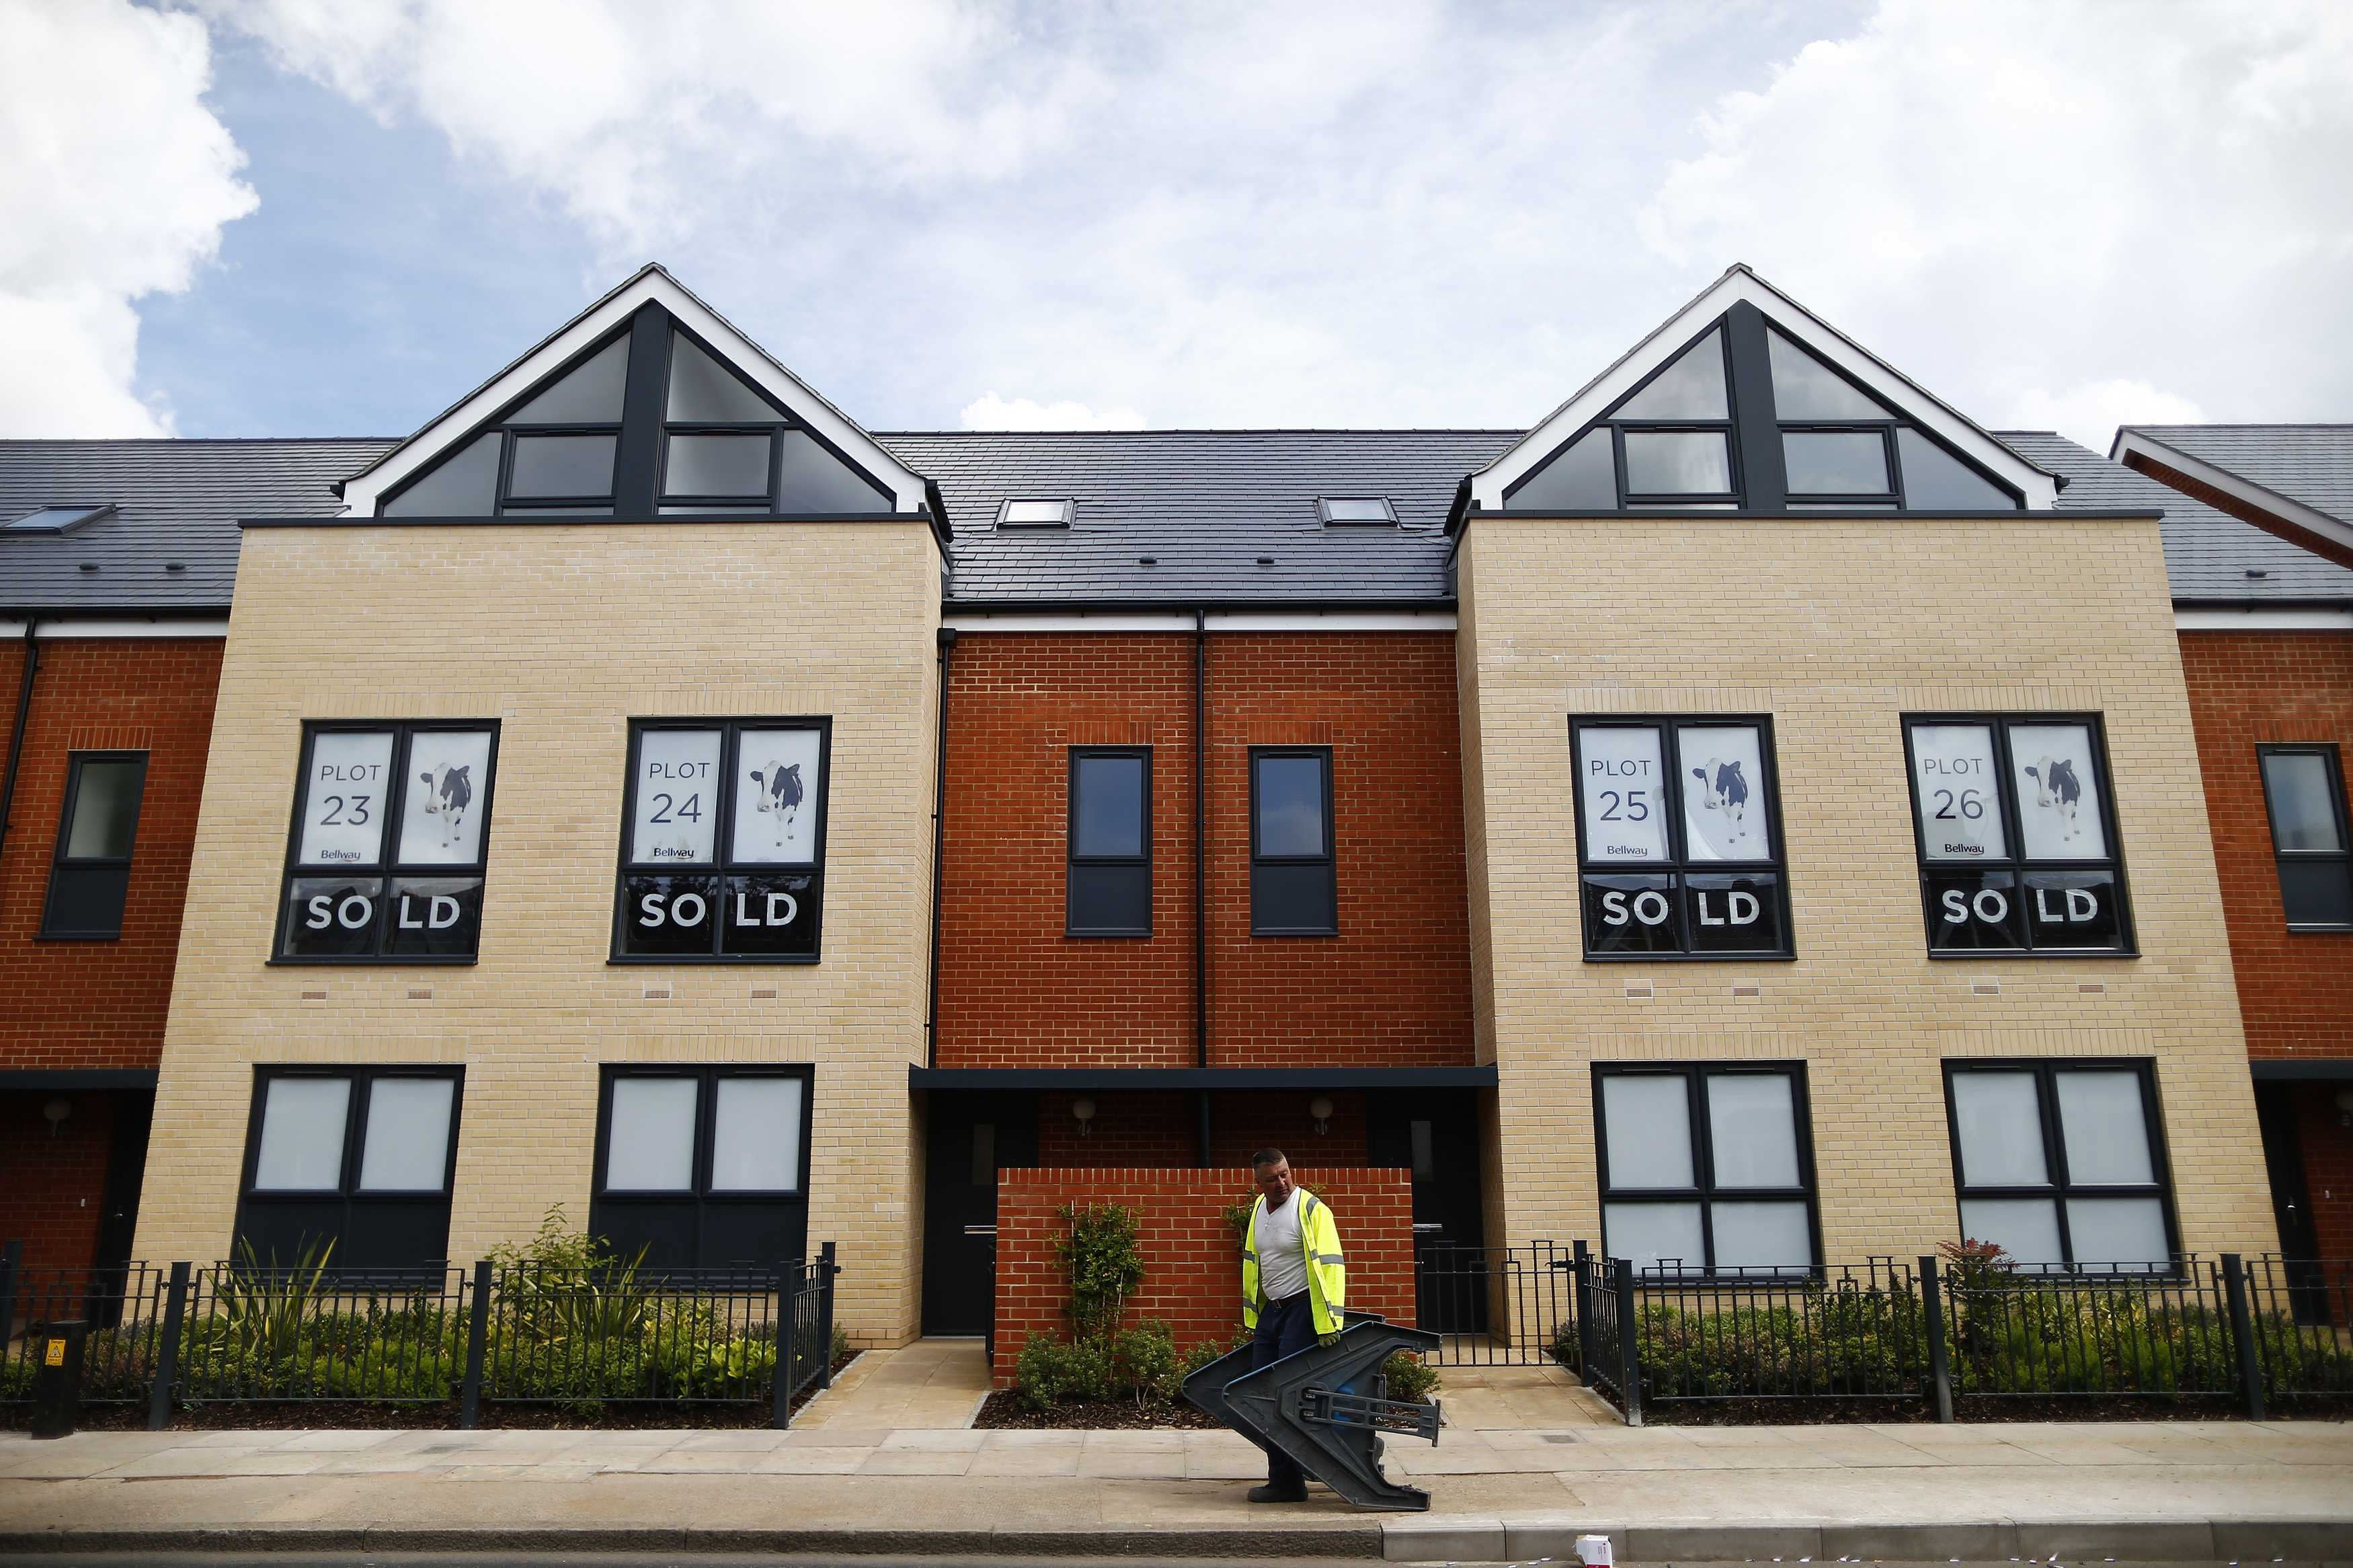 Is investing in new build property worth it?